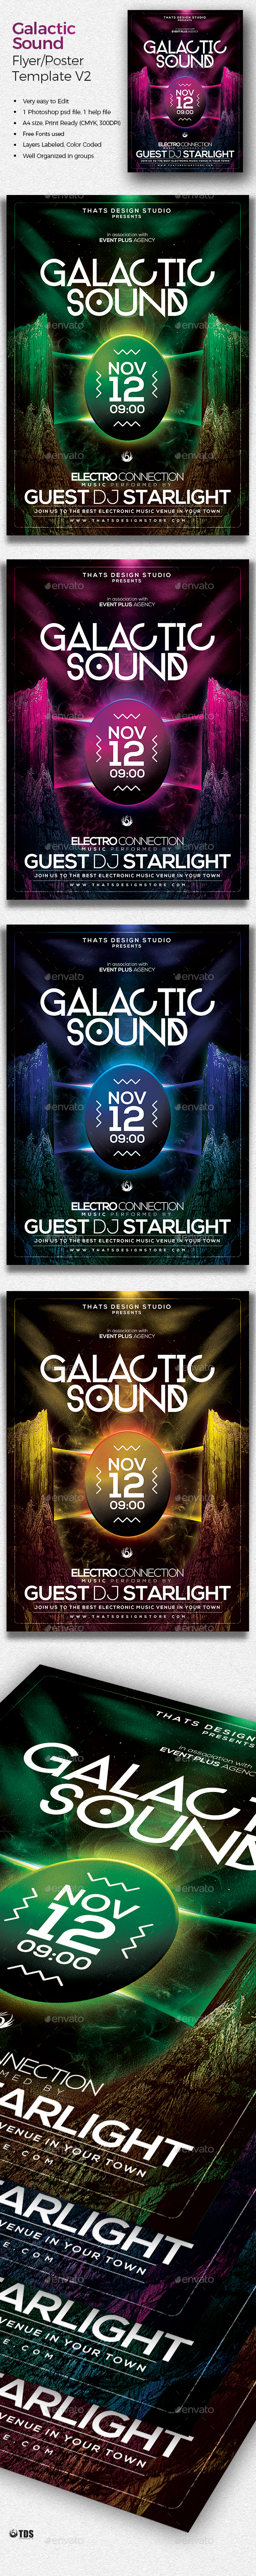 Galactic Sound Flyer Template V2 - Clubs & Parties Events